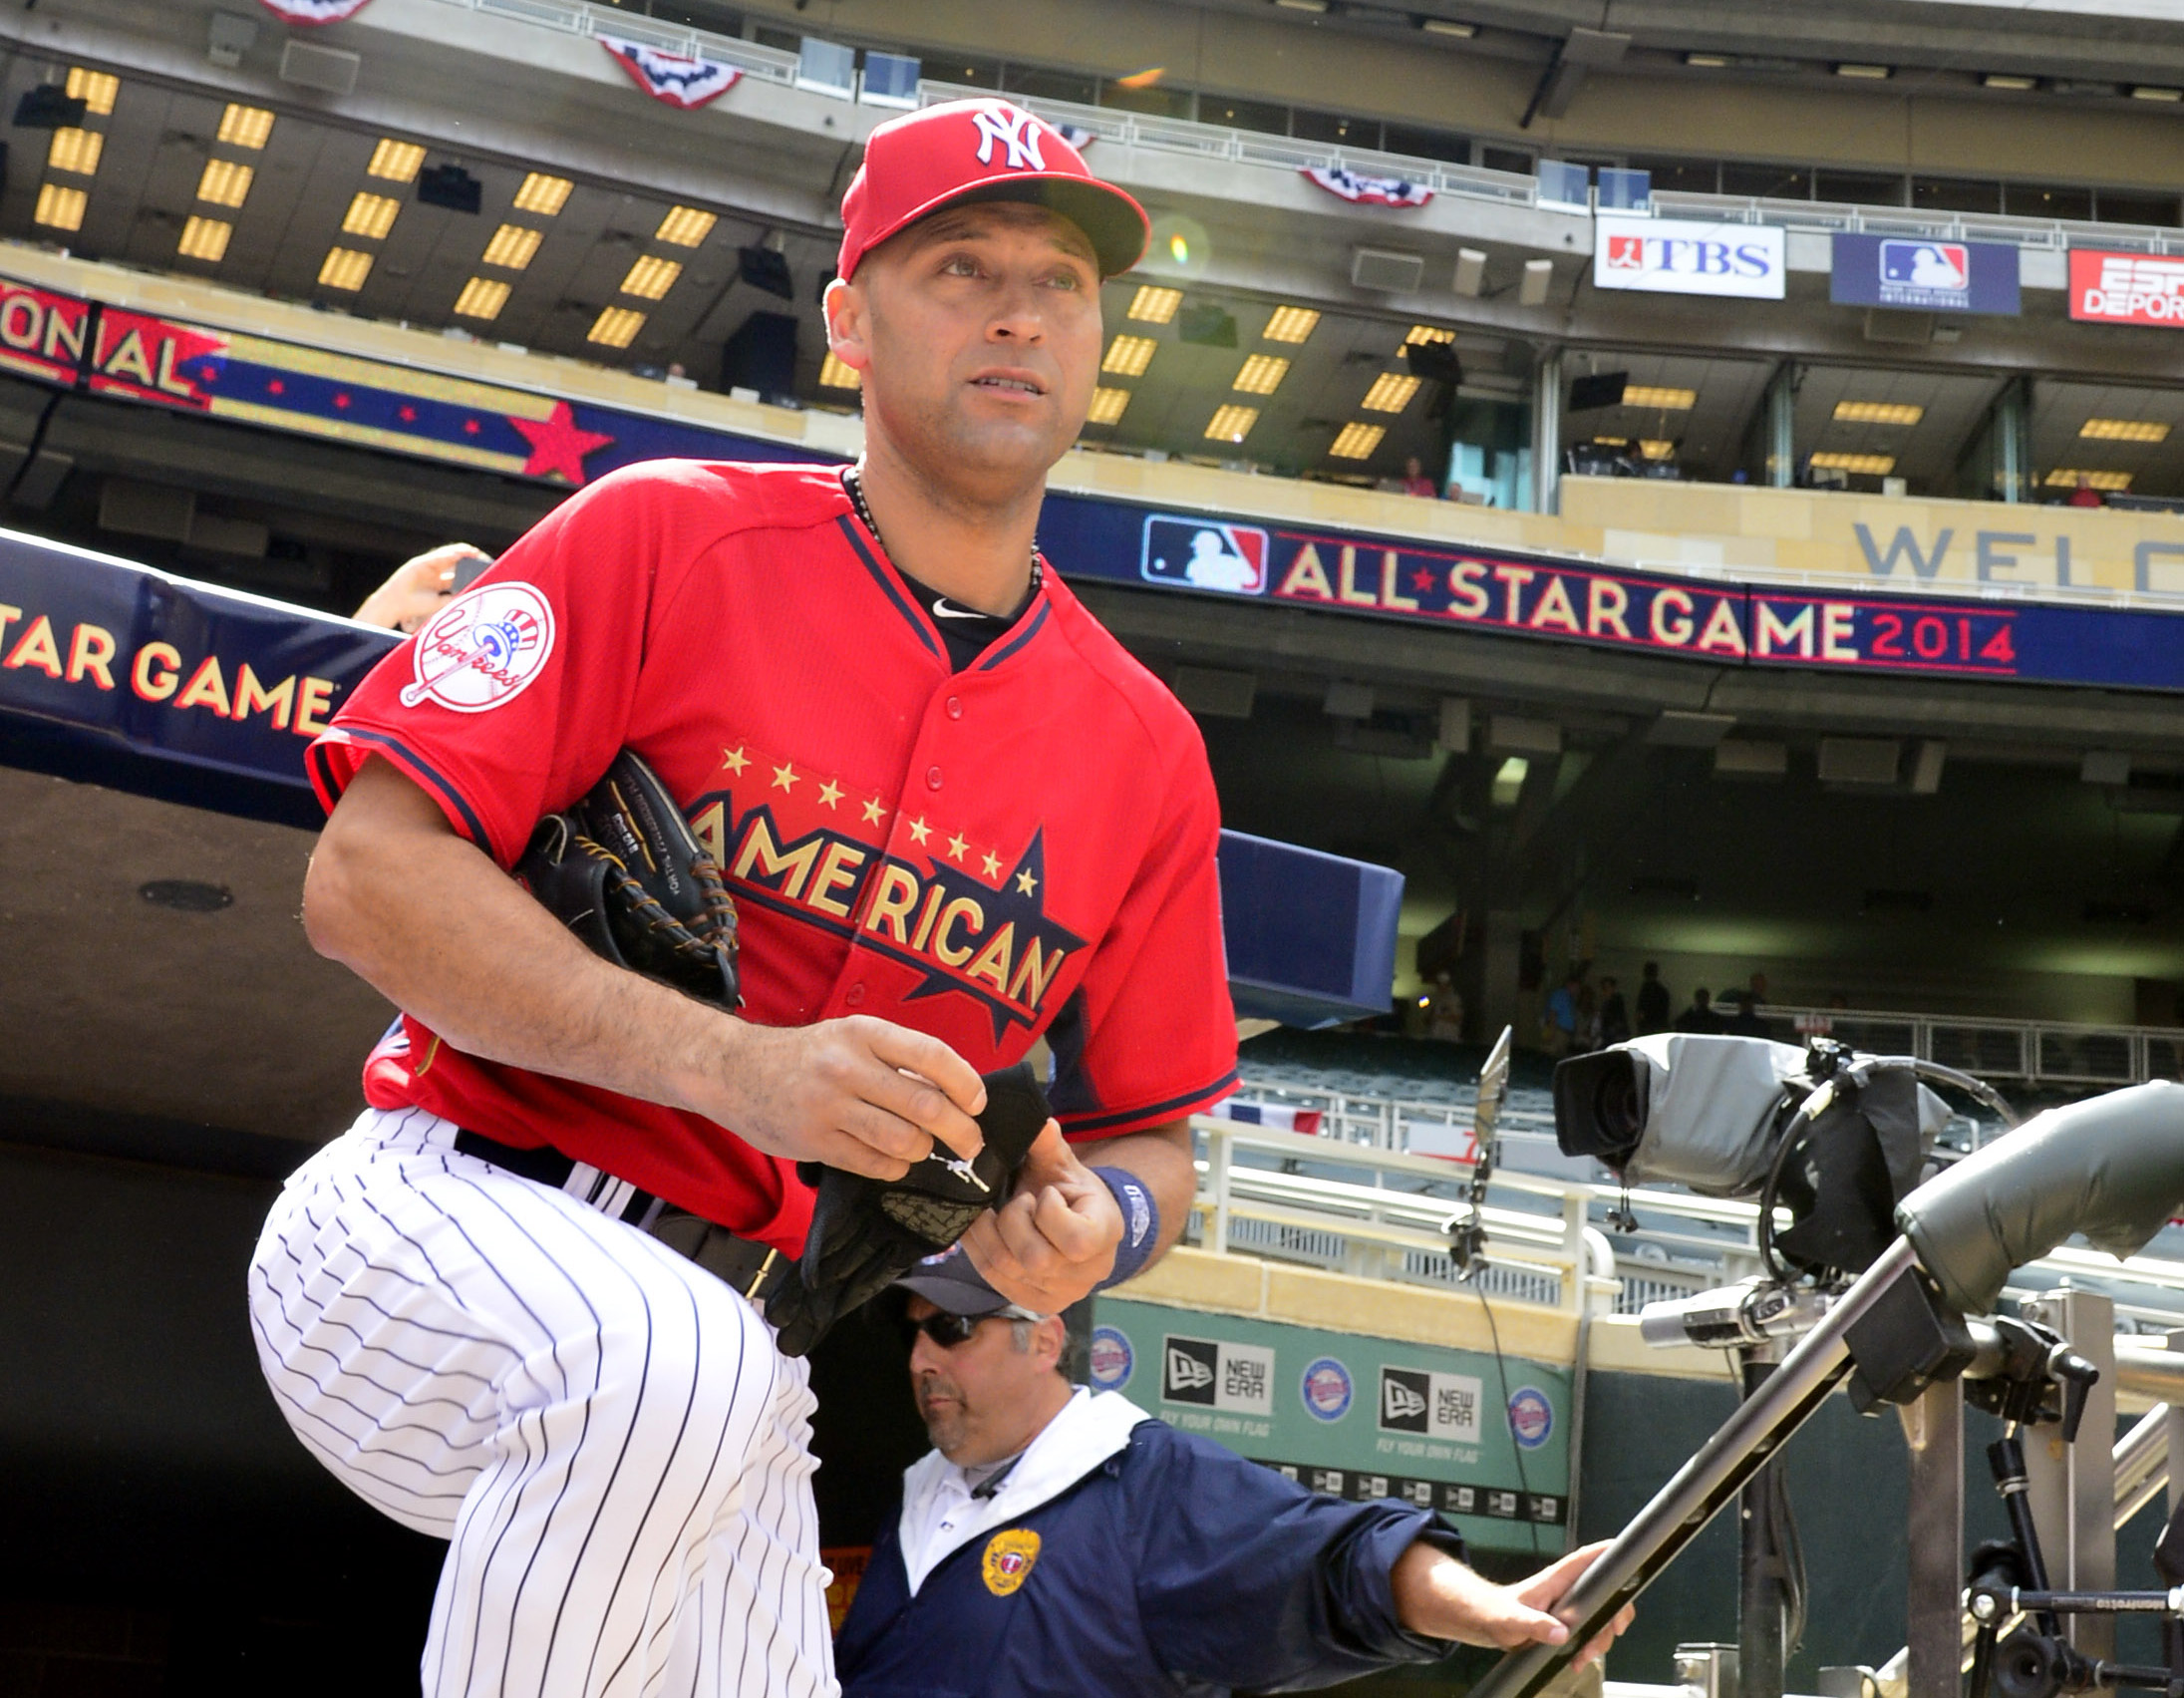 2014-07-15T204148Z_1994589182_NOCID_RTRMADP_3_MLB-ALL-STAR-GAME.jpg